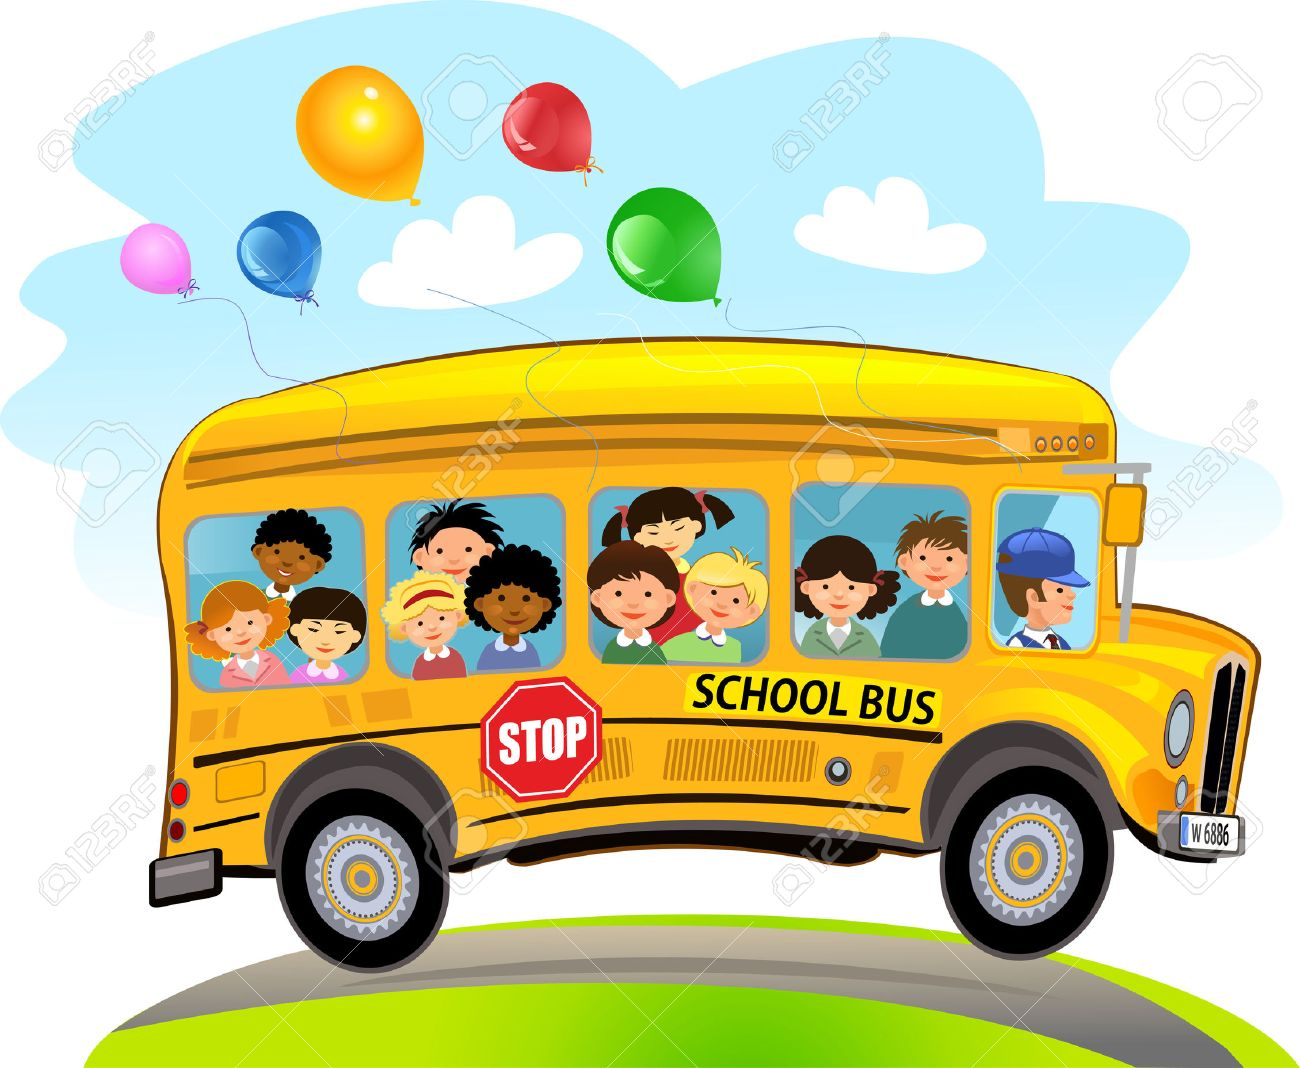 cartoon school kids riding a school bus royalty free cliparts rh 123rf com clipart business gratuit clipart bushes